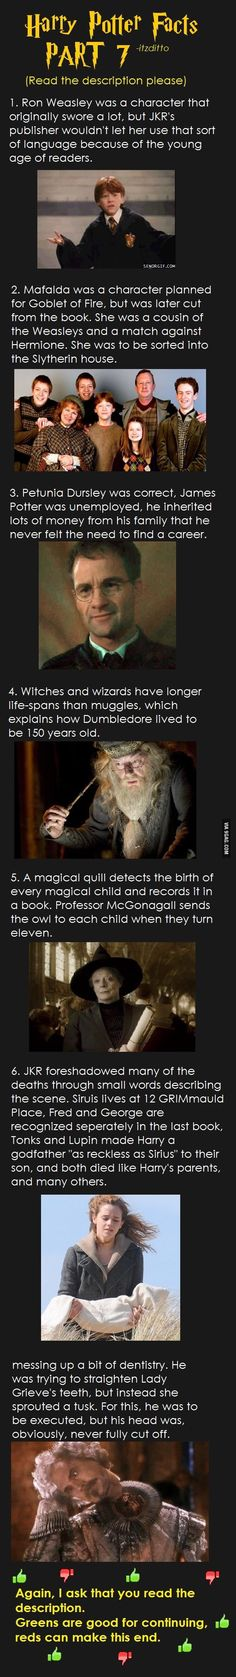 Fun Harry Potter Facts.